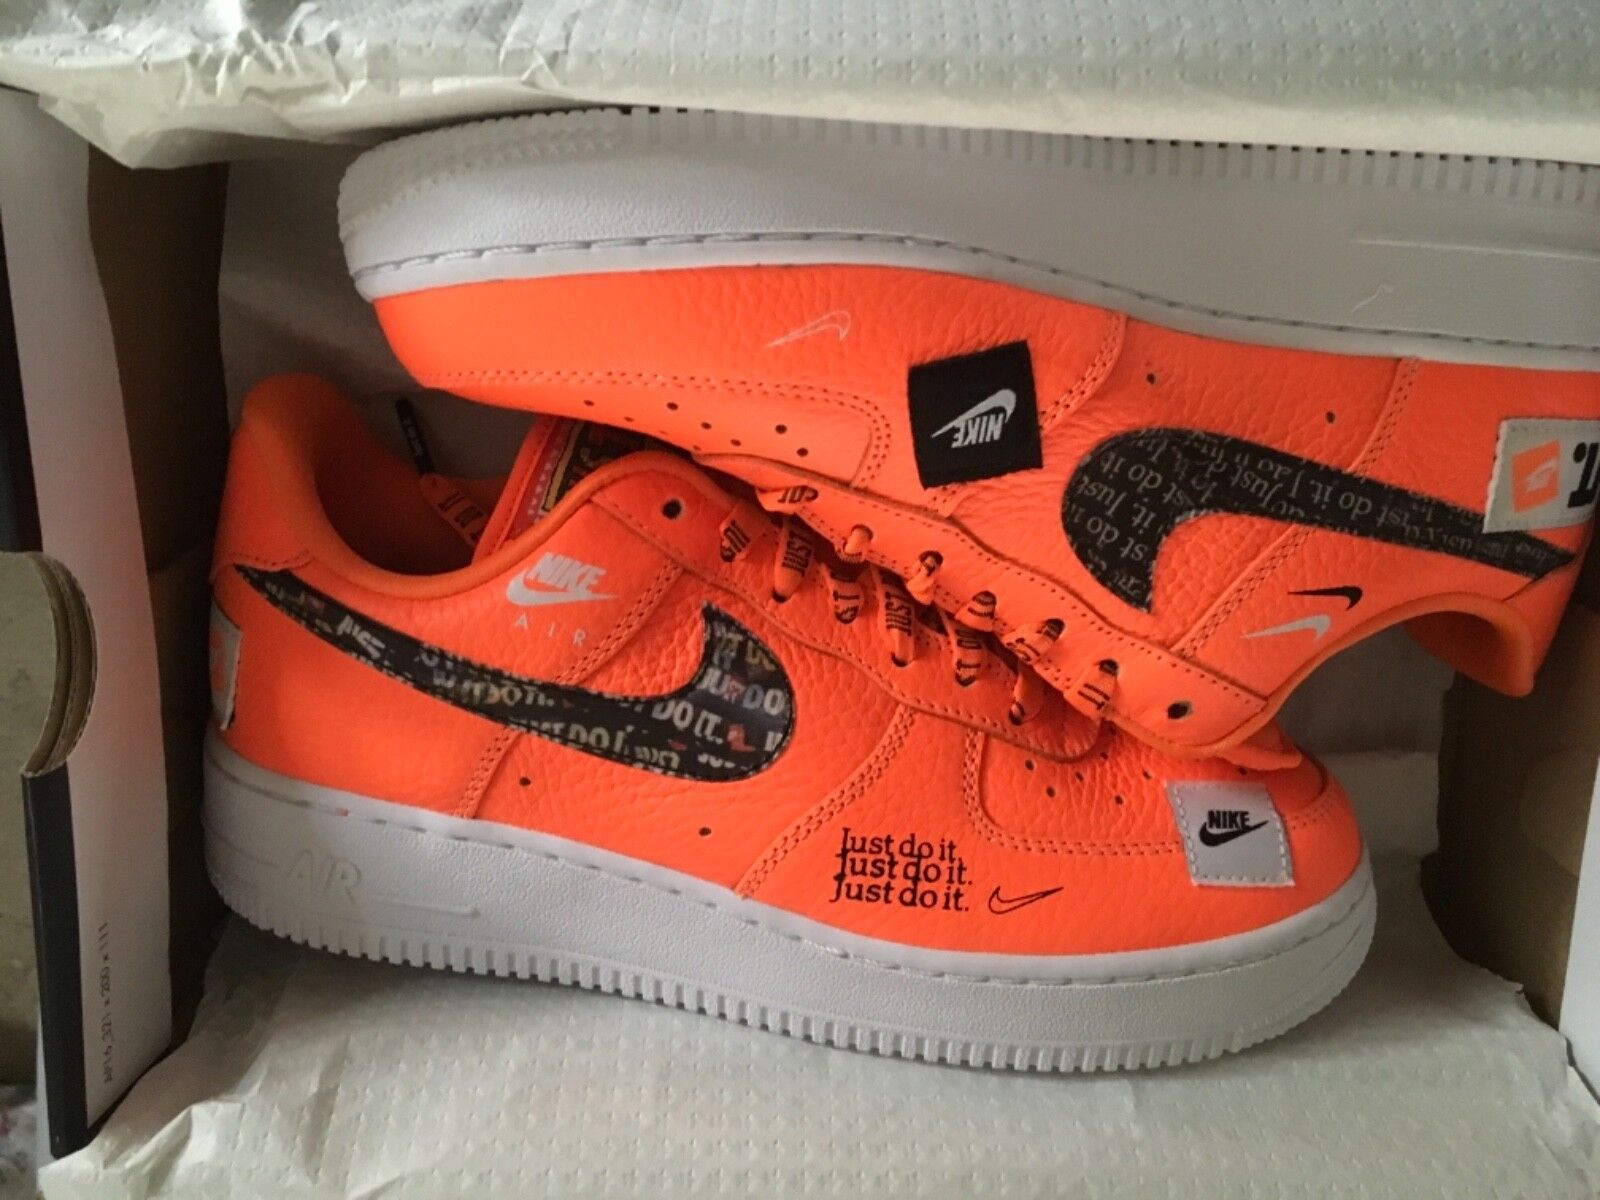 Nike Air Force One 1 '07 Premium PRM Low JDI Just Do It Total Orange Comfortable Cheap women's shoes women's shoes